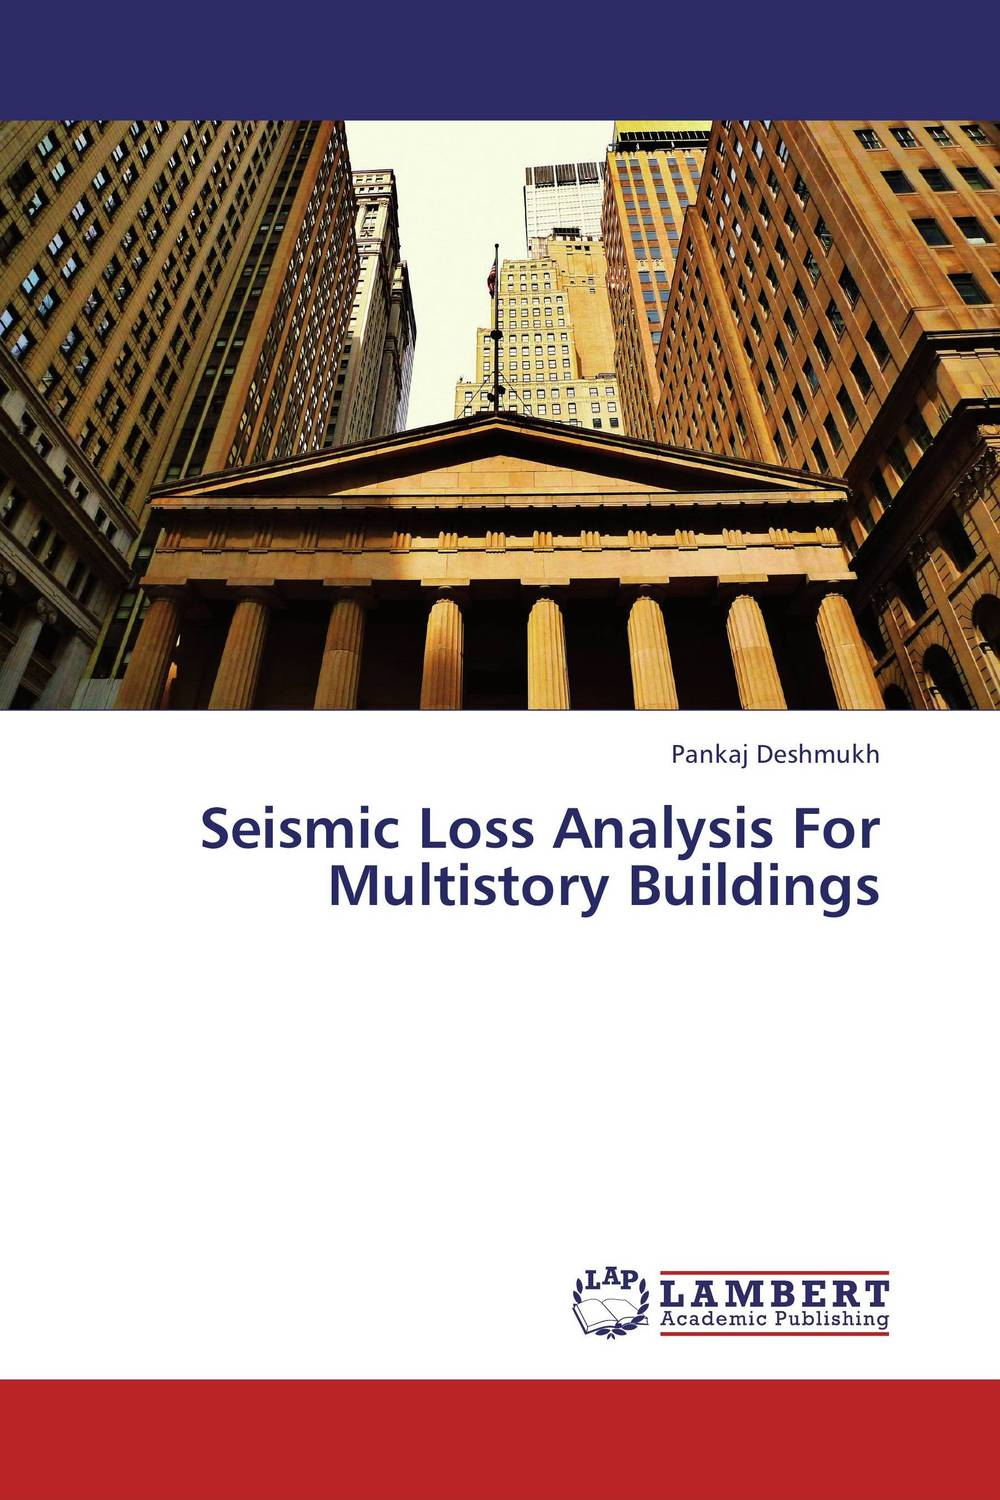 Seismic Loss Analysis For Multistory Buildings in situ detection of dna damage methods and protocols